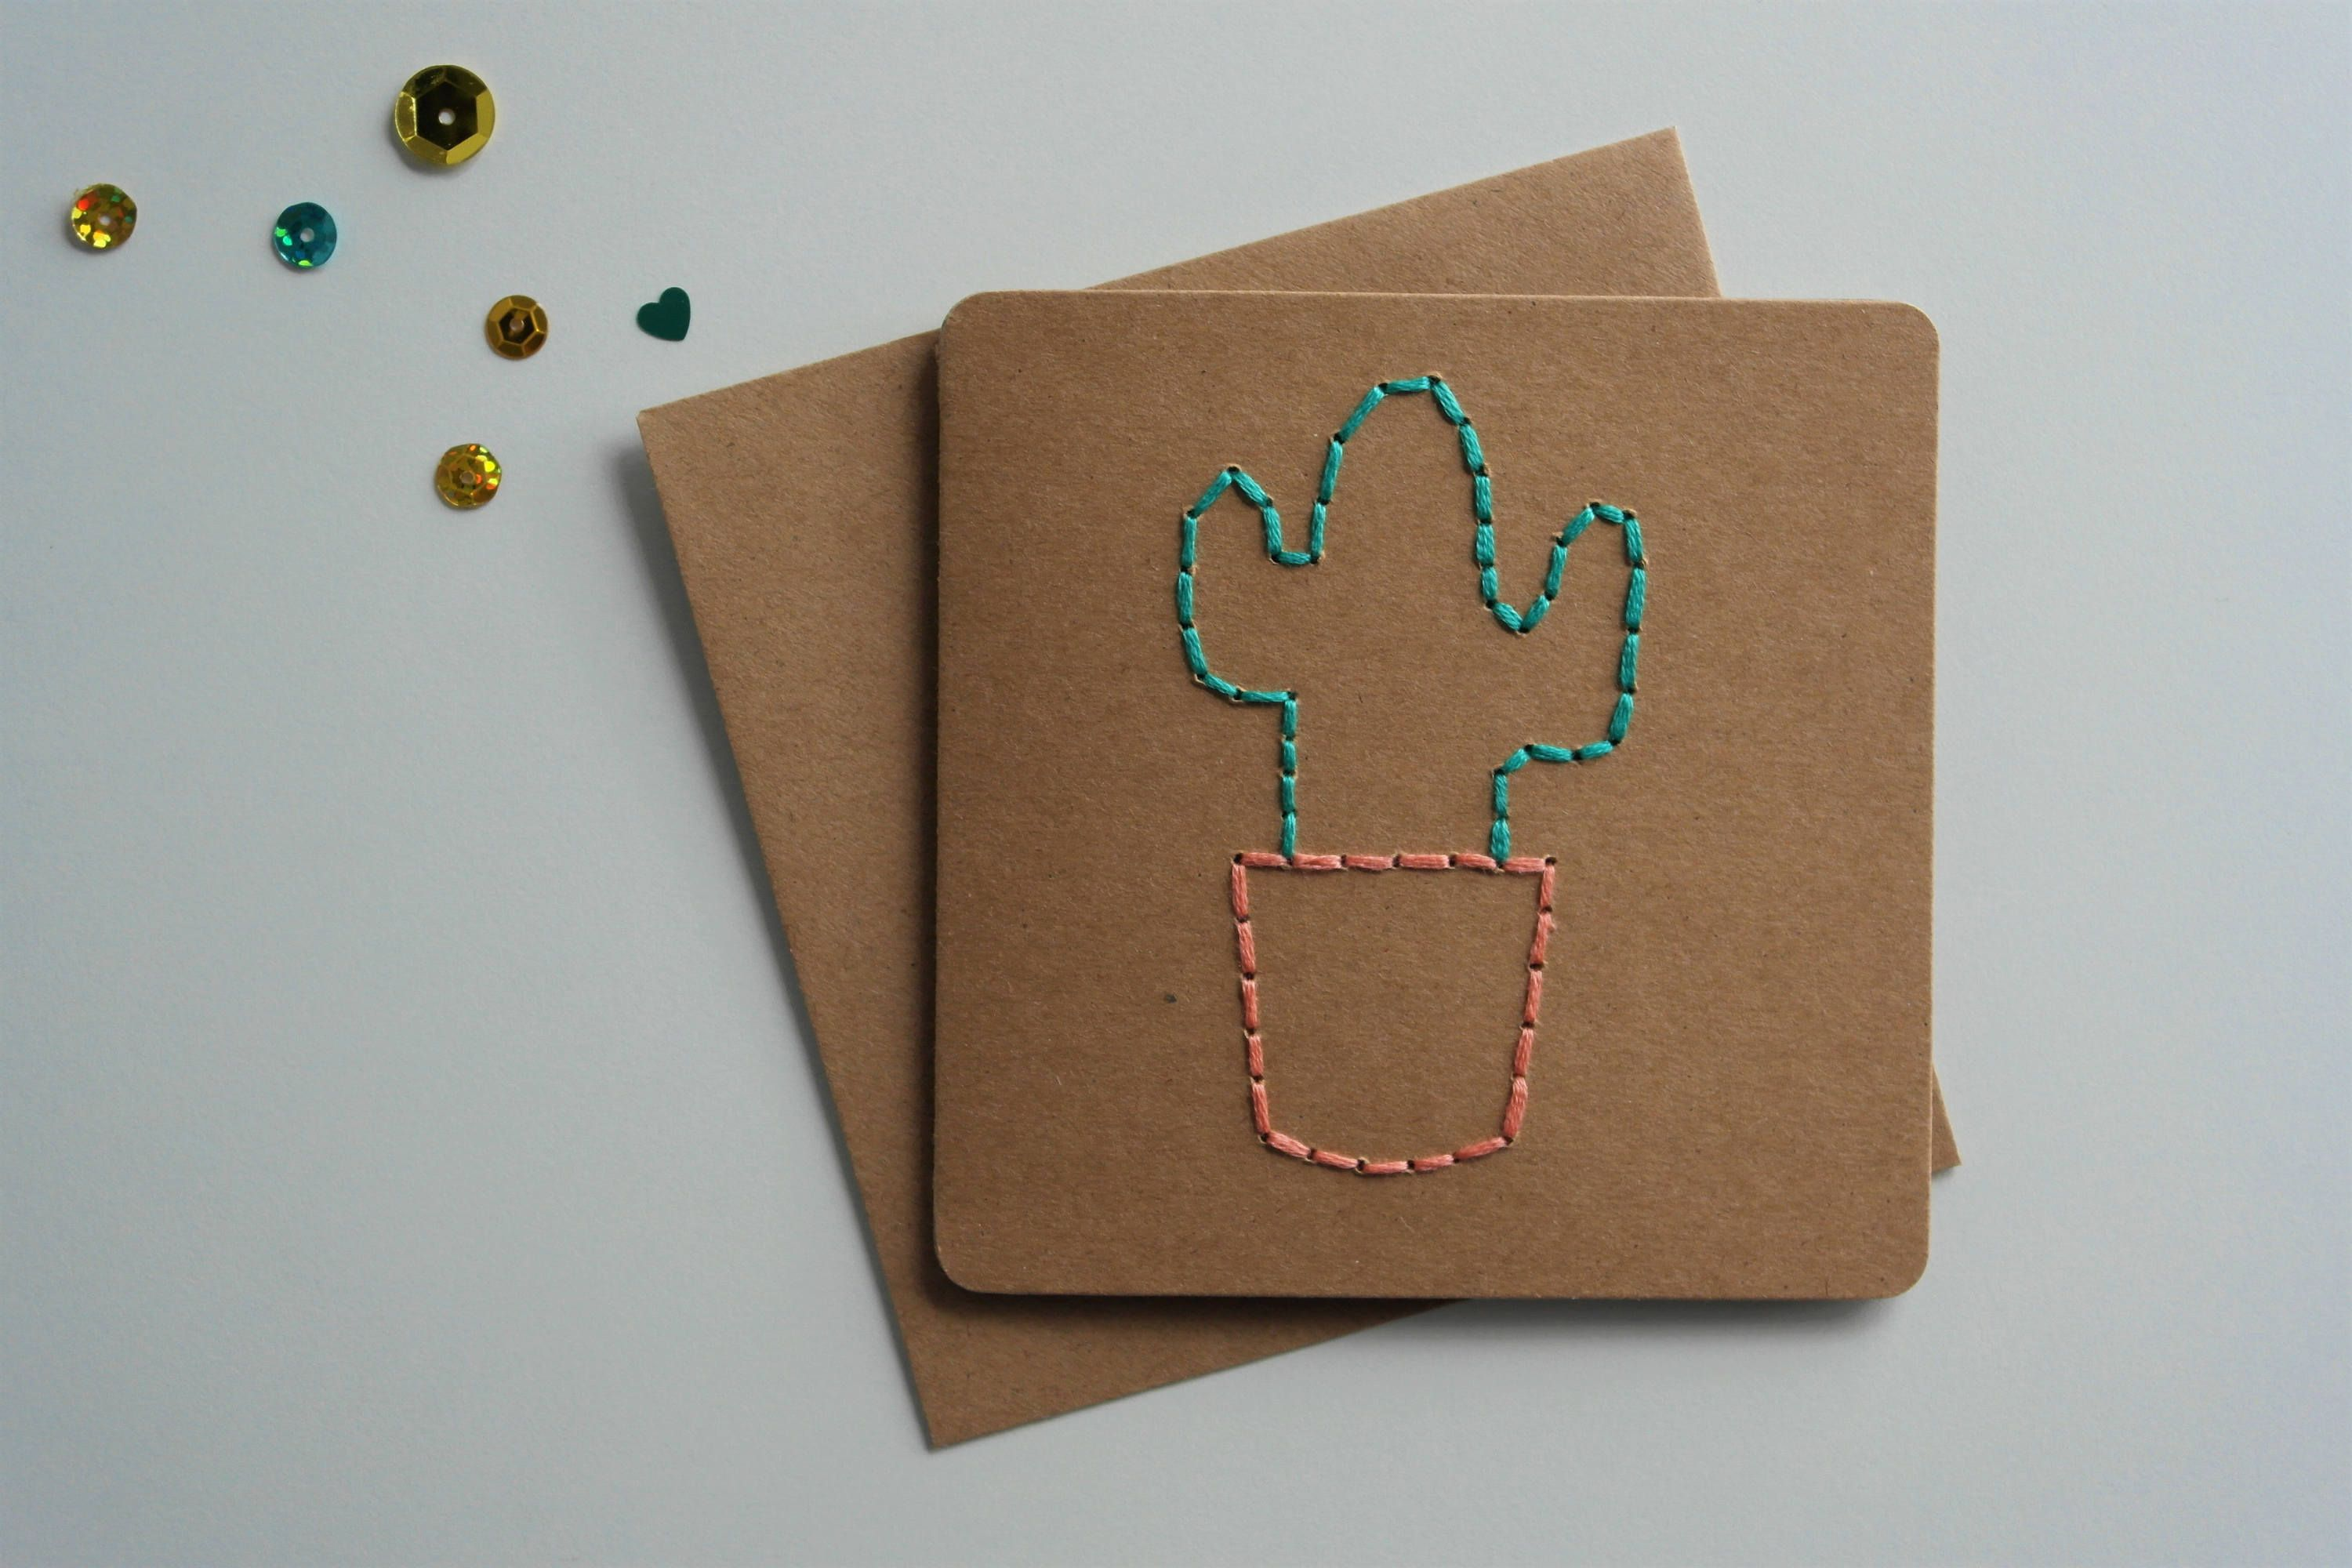 Small Unisex Card Hand Sewn Card Hand Embroidered Card Cacti